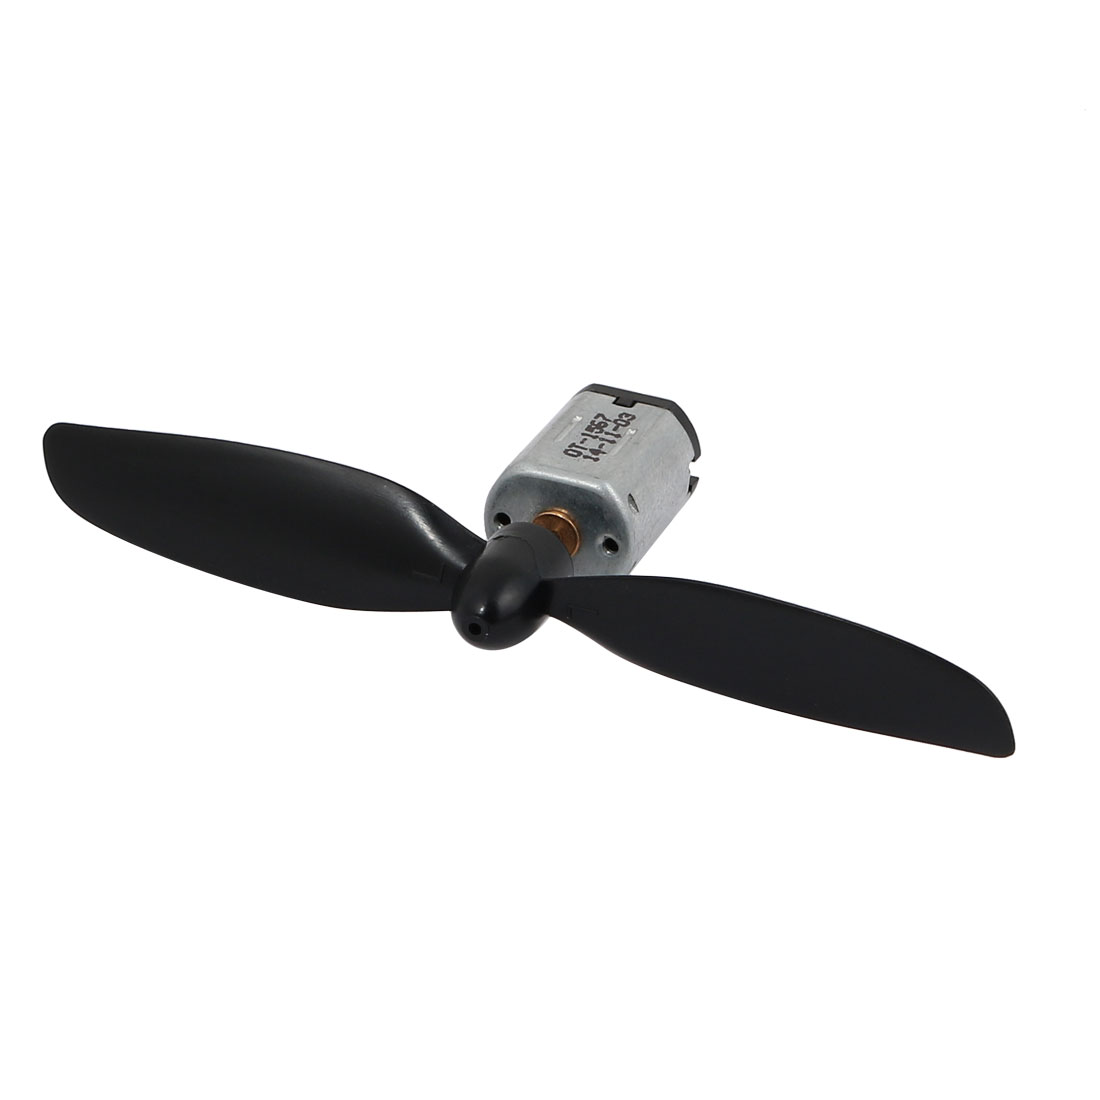 DC 3.7V 25000RPM N20 Strong Magnetic Motor w CCW Propeller for RC Quadcopter